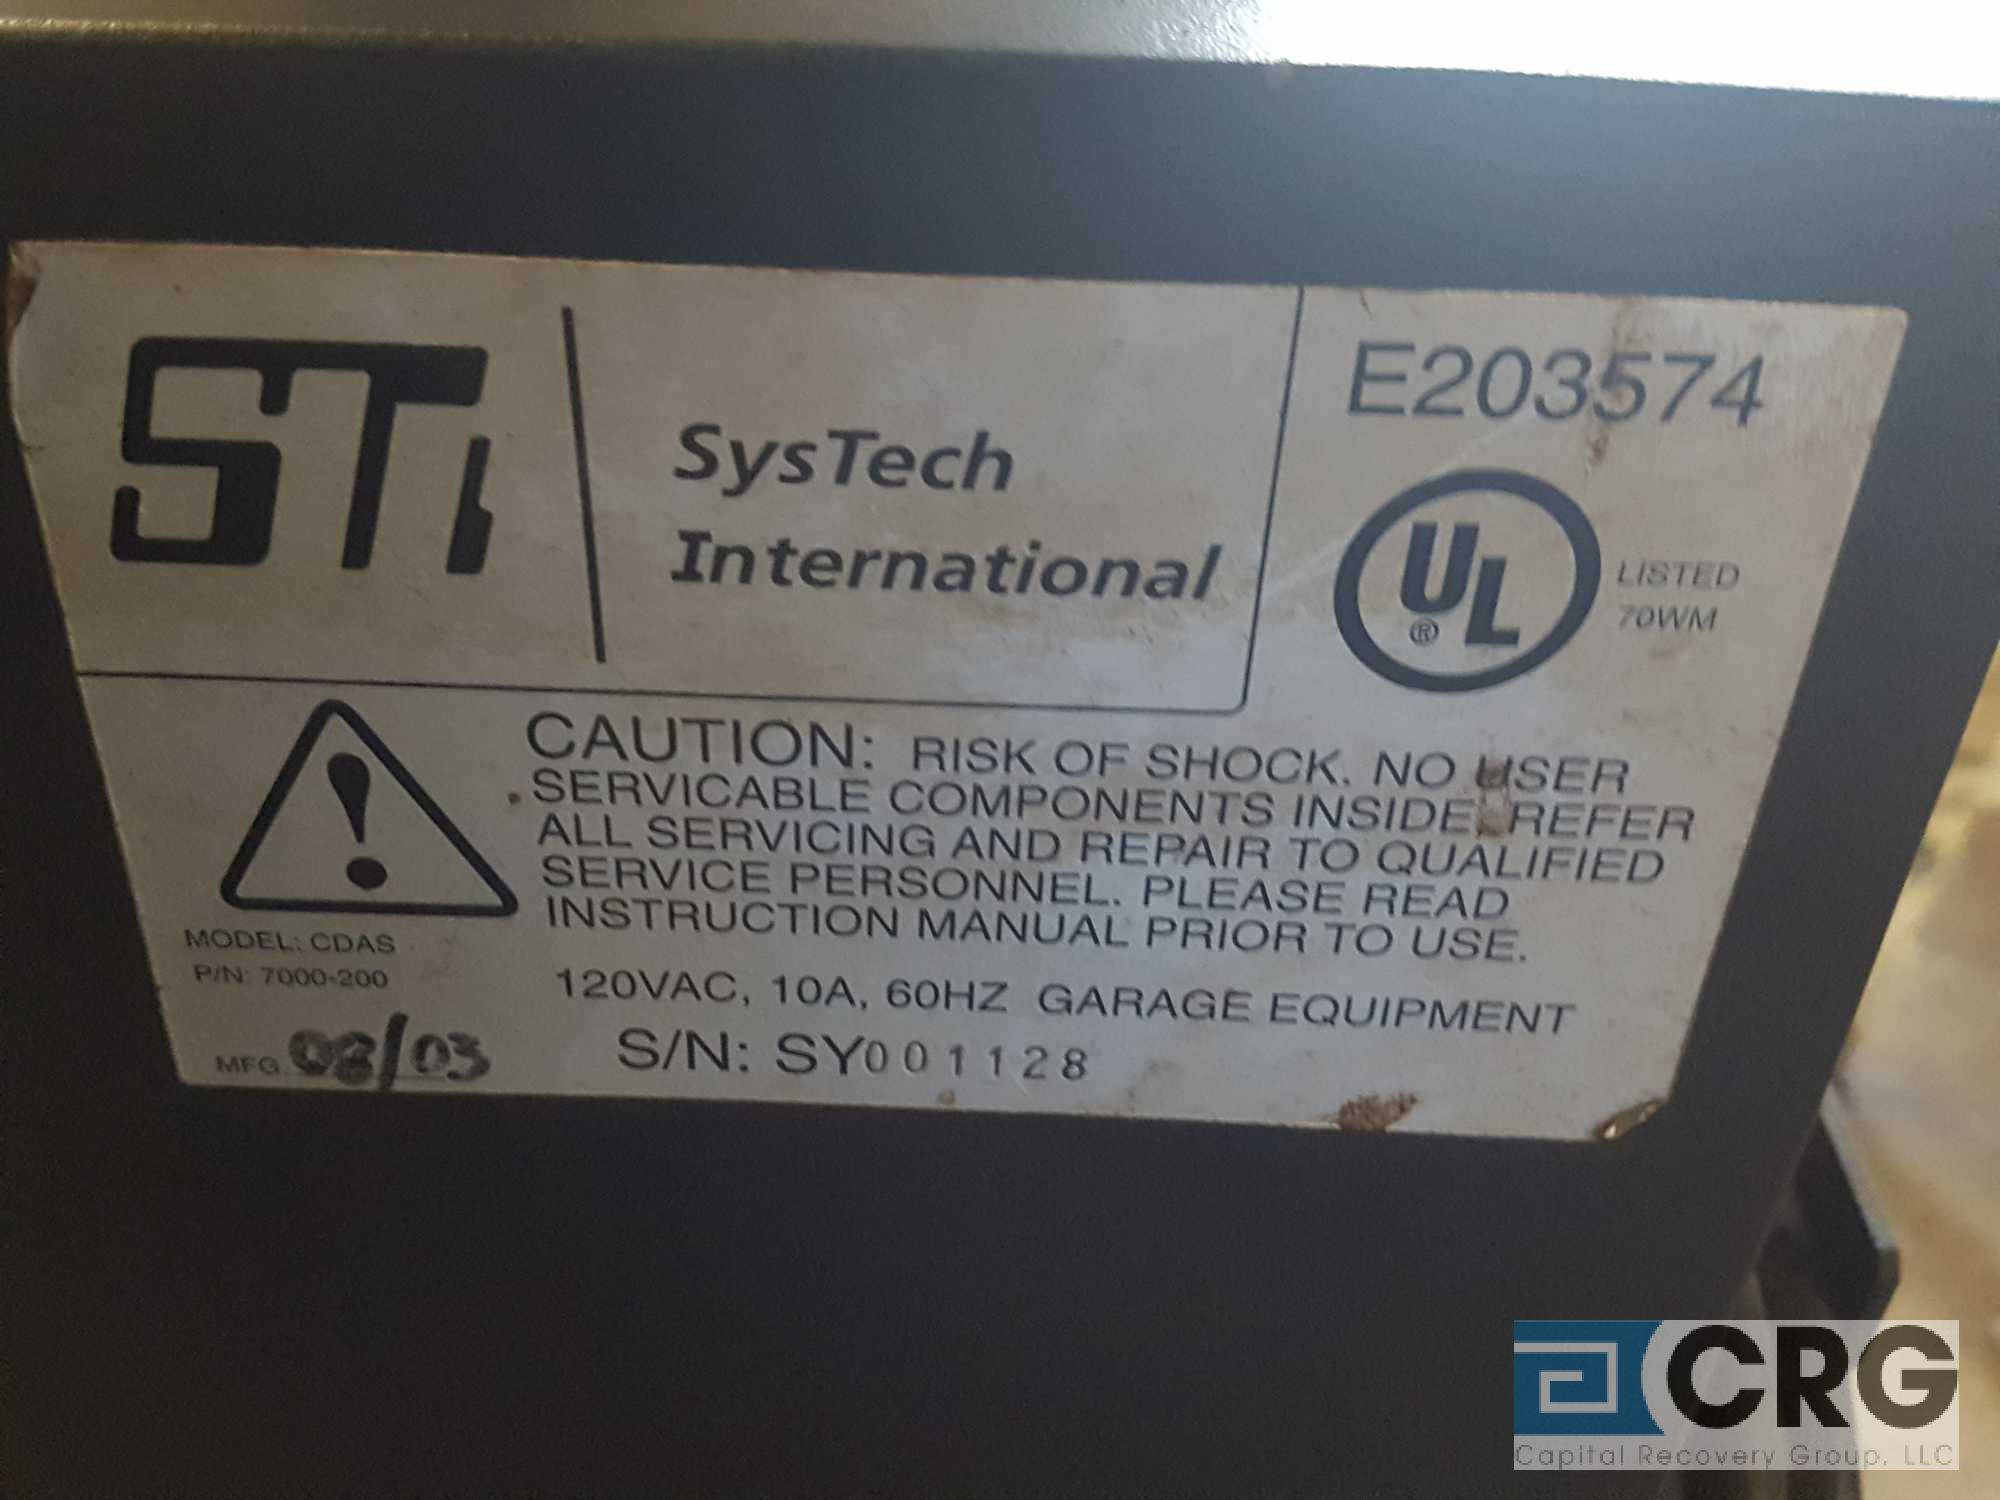 SYstech International Computer System, model E203574, serial SY001128, in portable cabinet. - Image 2 of 5